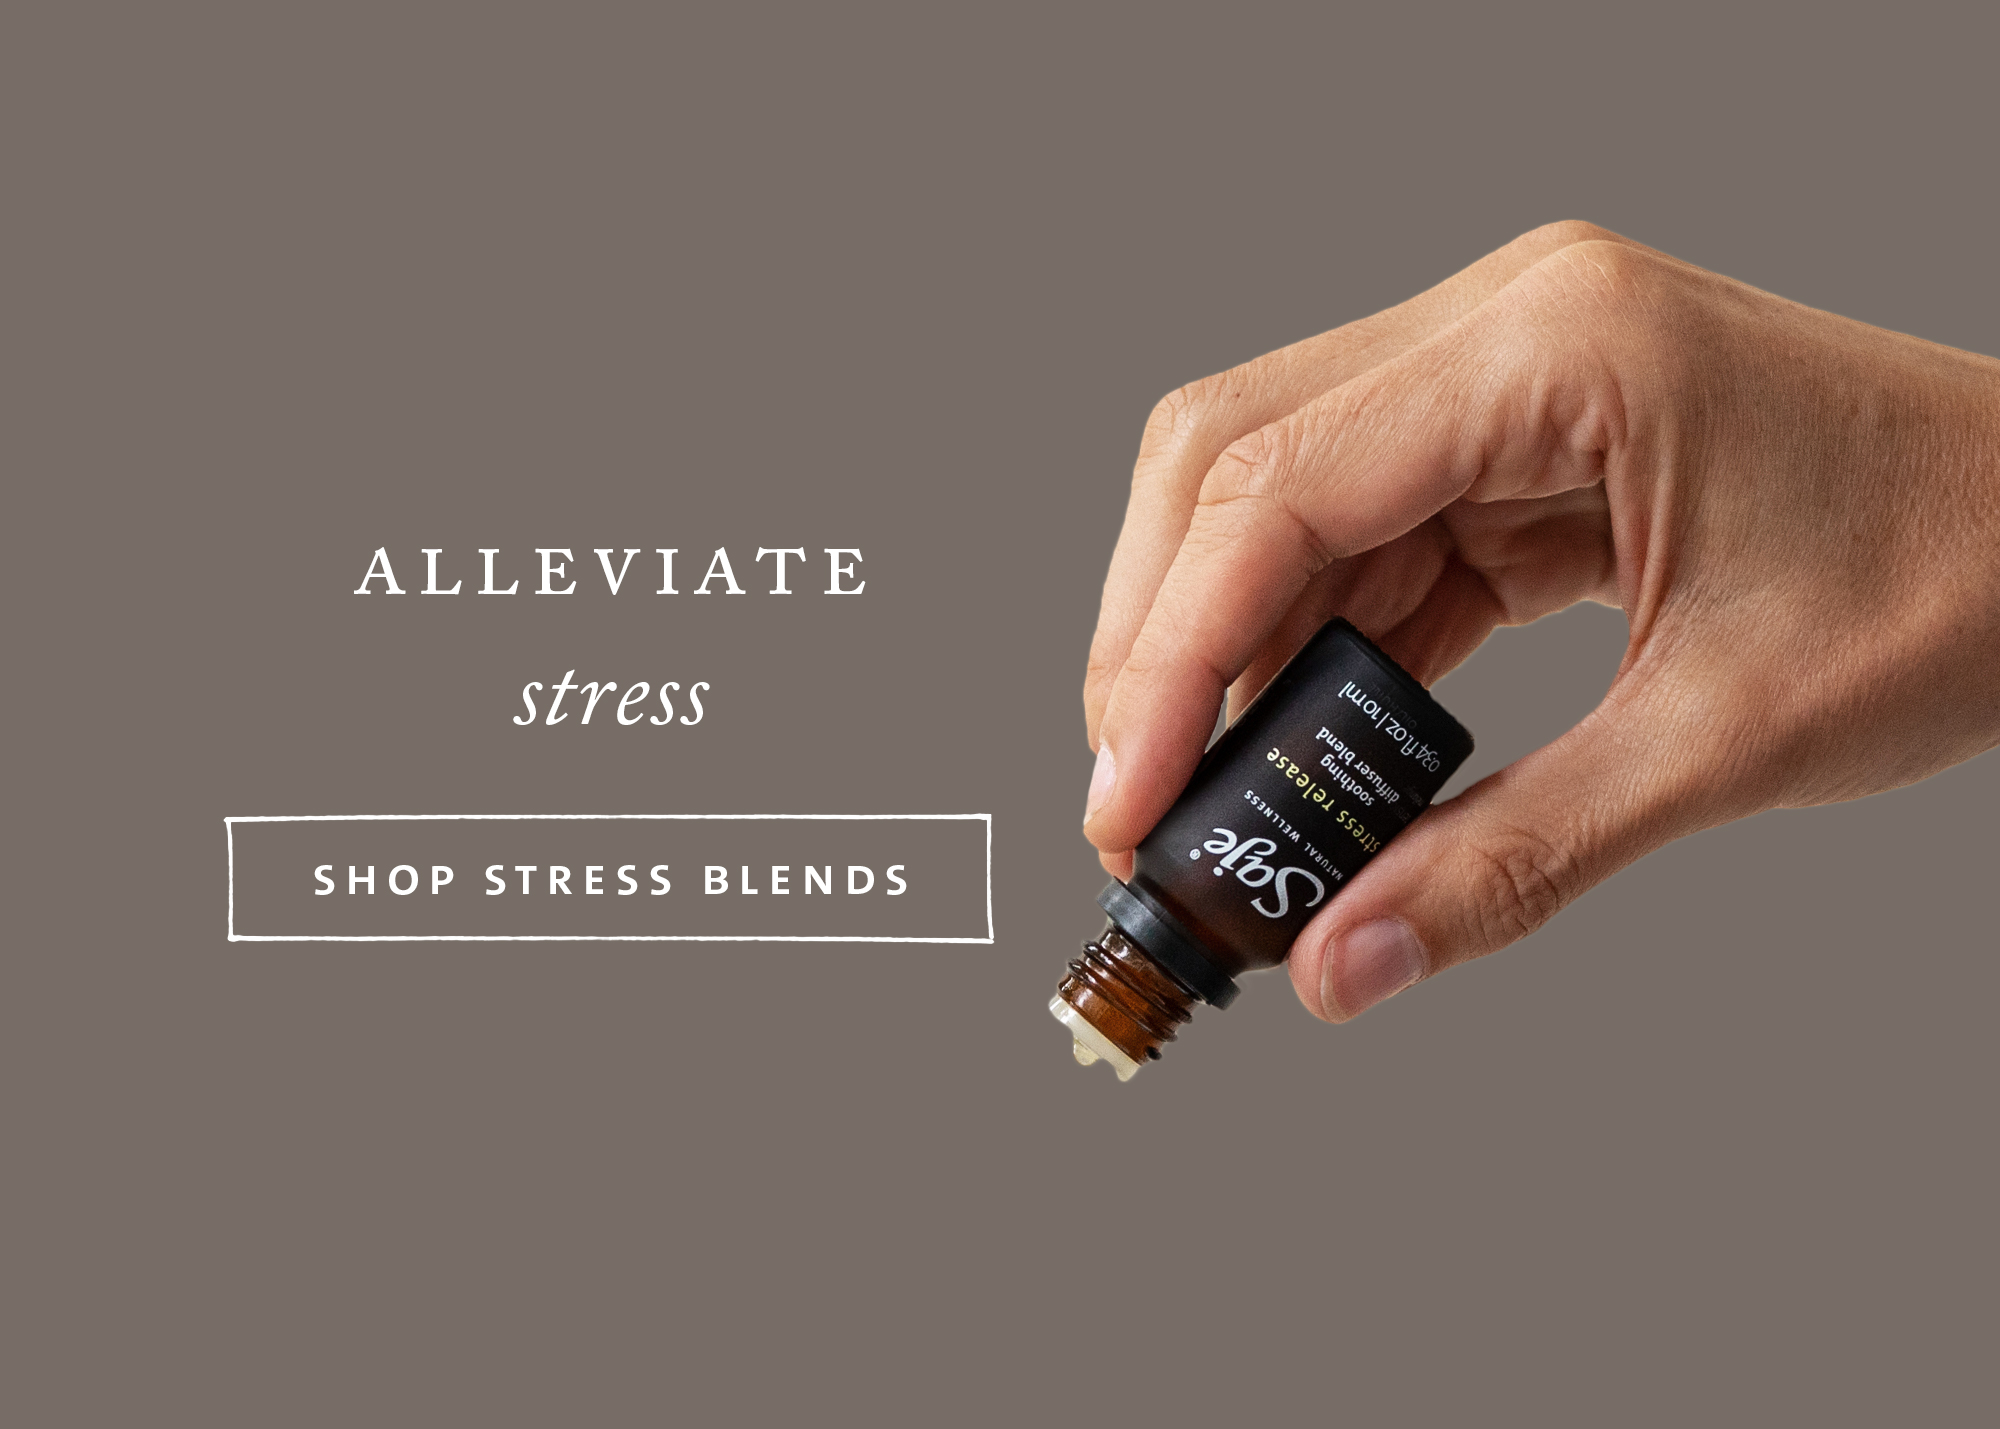 Find your blend to alleviate stress